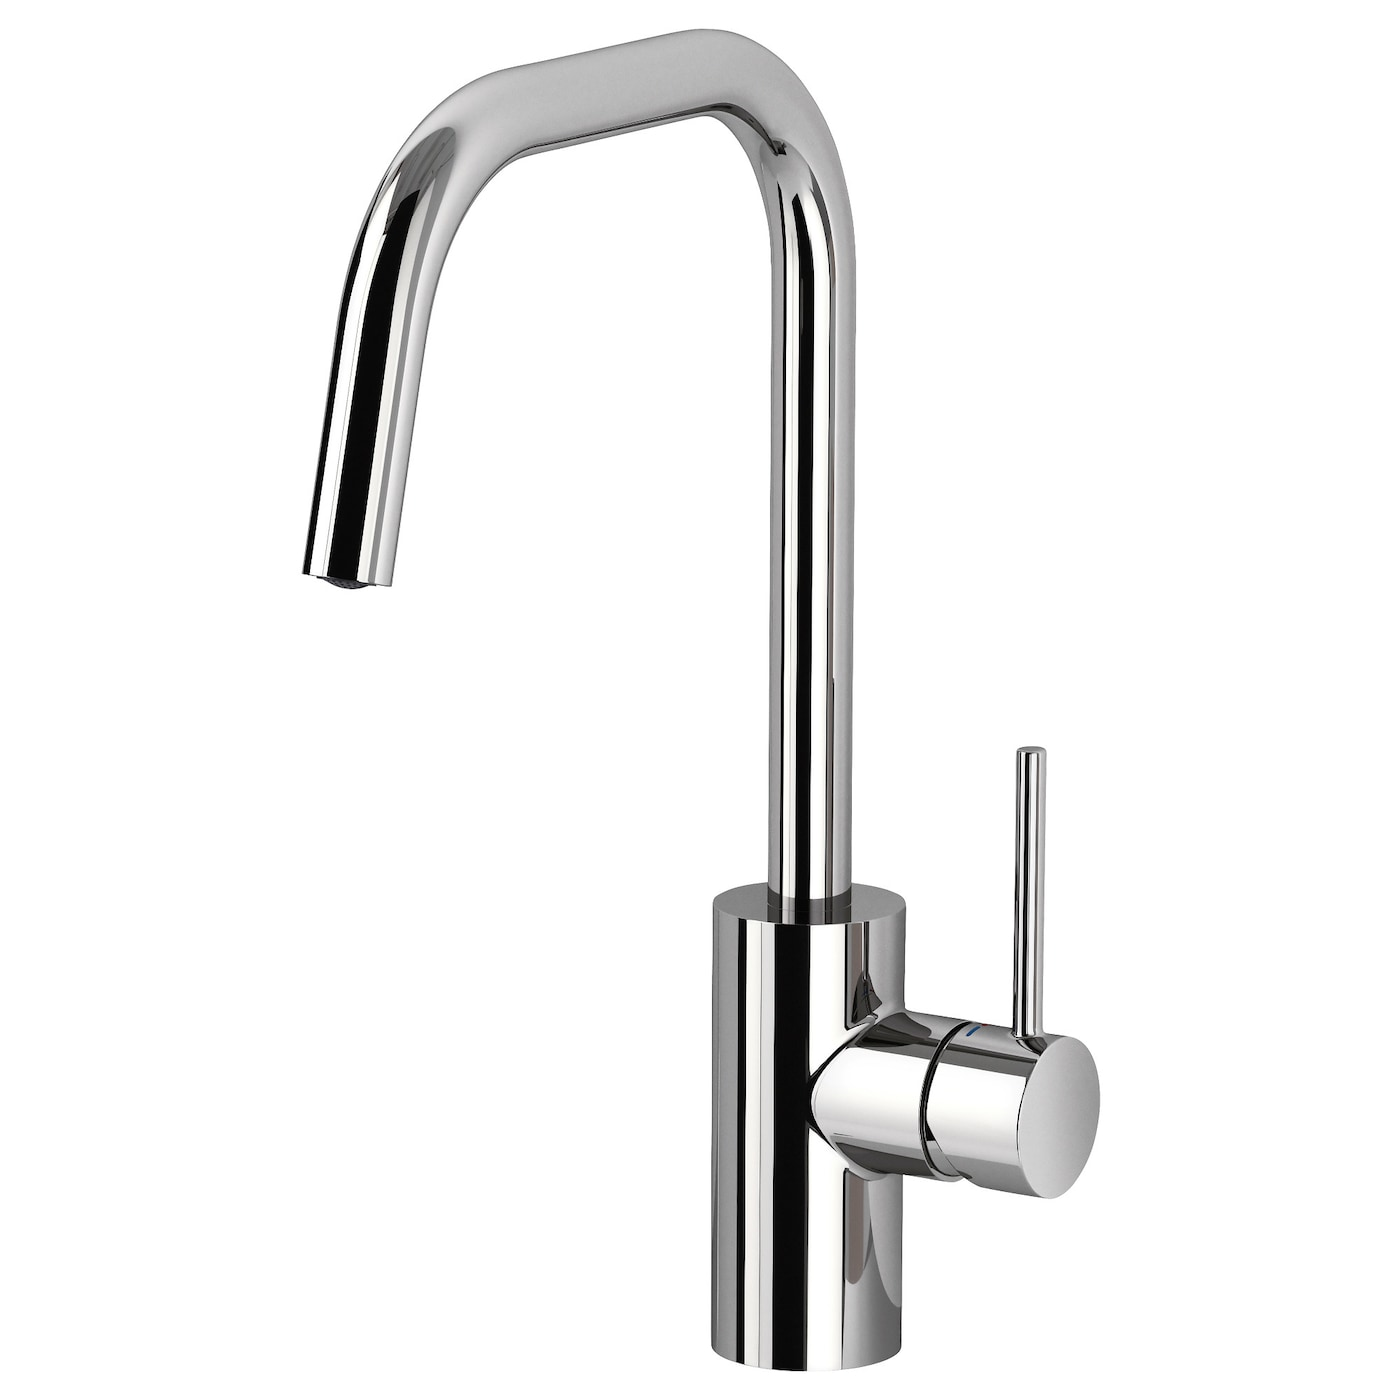 White Kitchen Mixer Tap Älmaren kitchen mixer tap chrome-plated - ikea